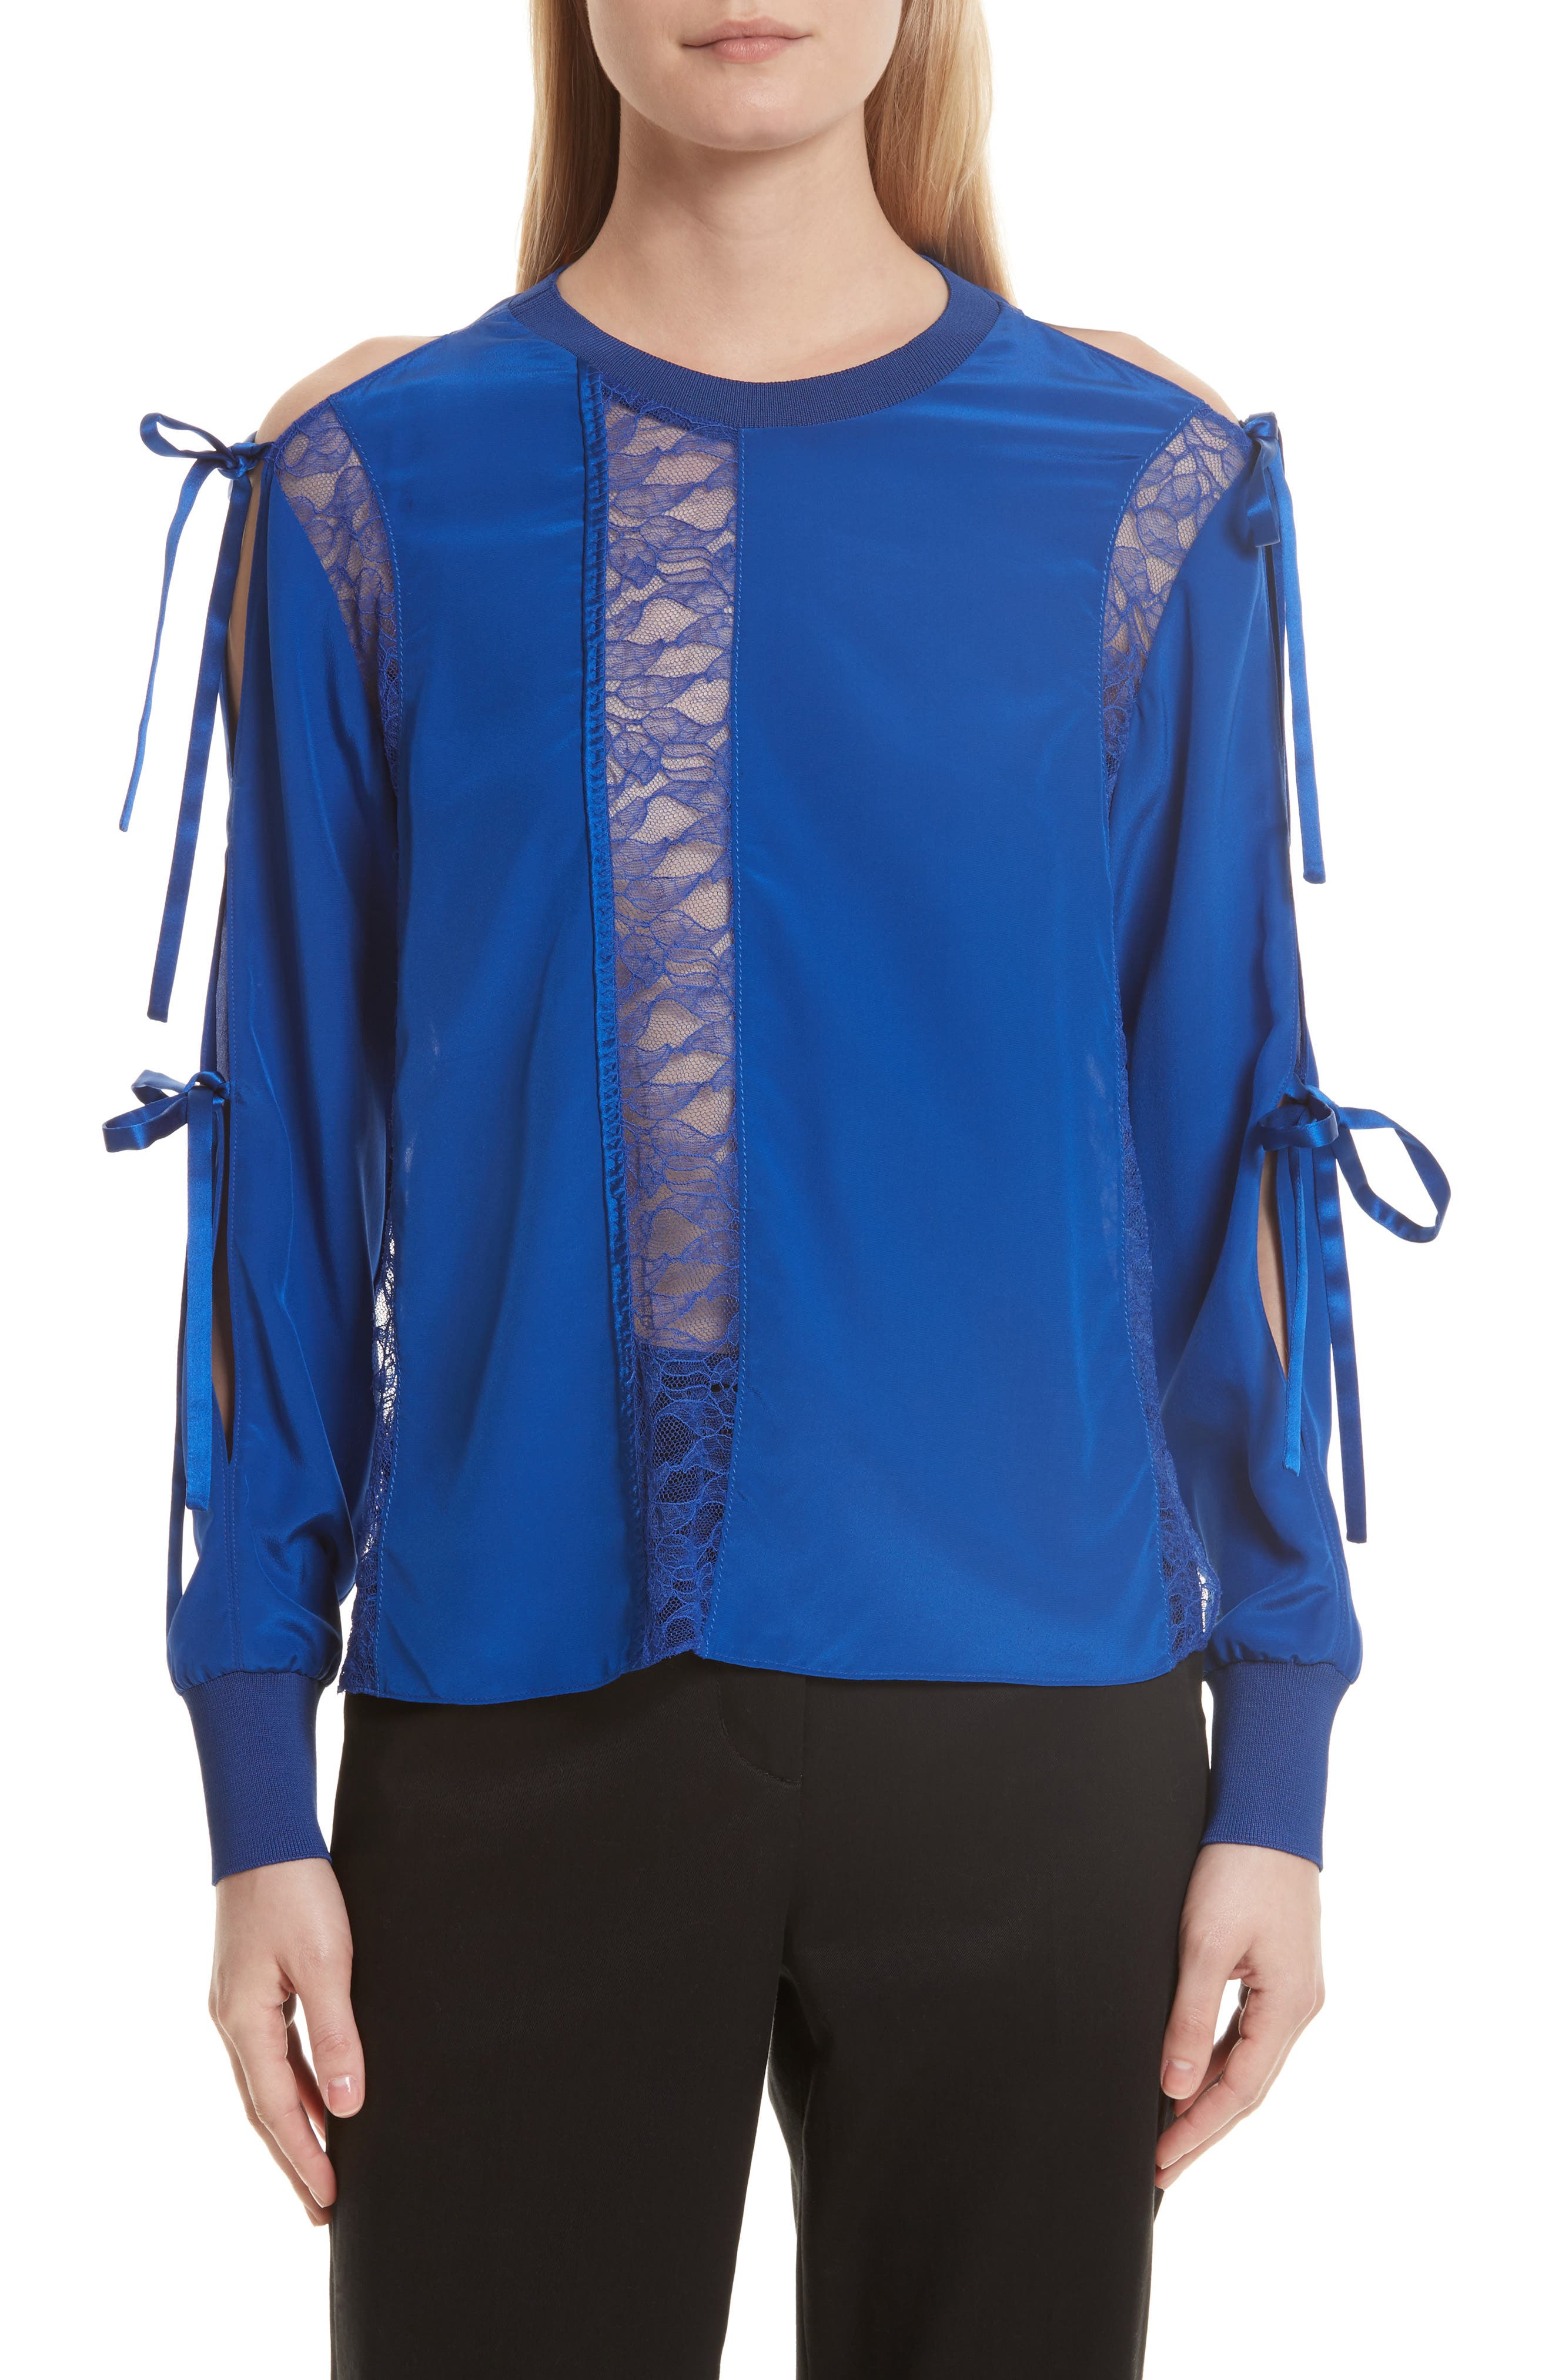 Alternate Image 1 Selected - 3.1 Phillip Lim Silk Tied Cold Shoulder Top